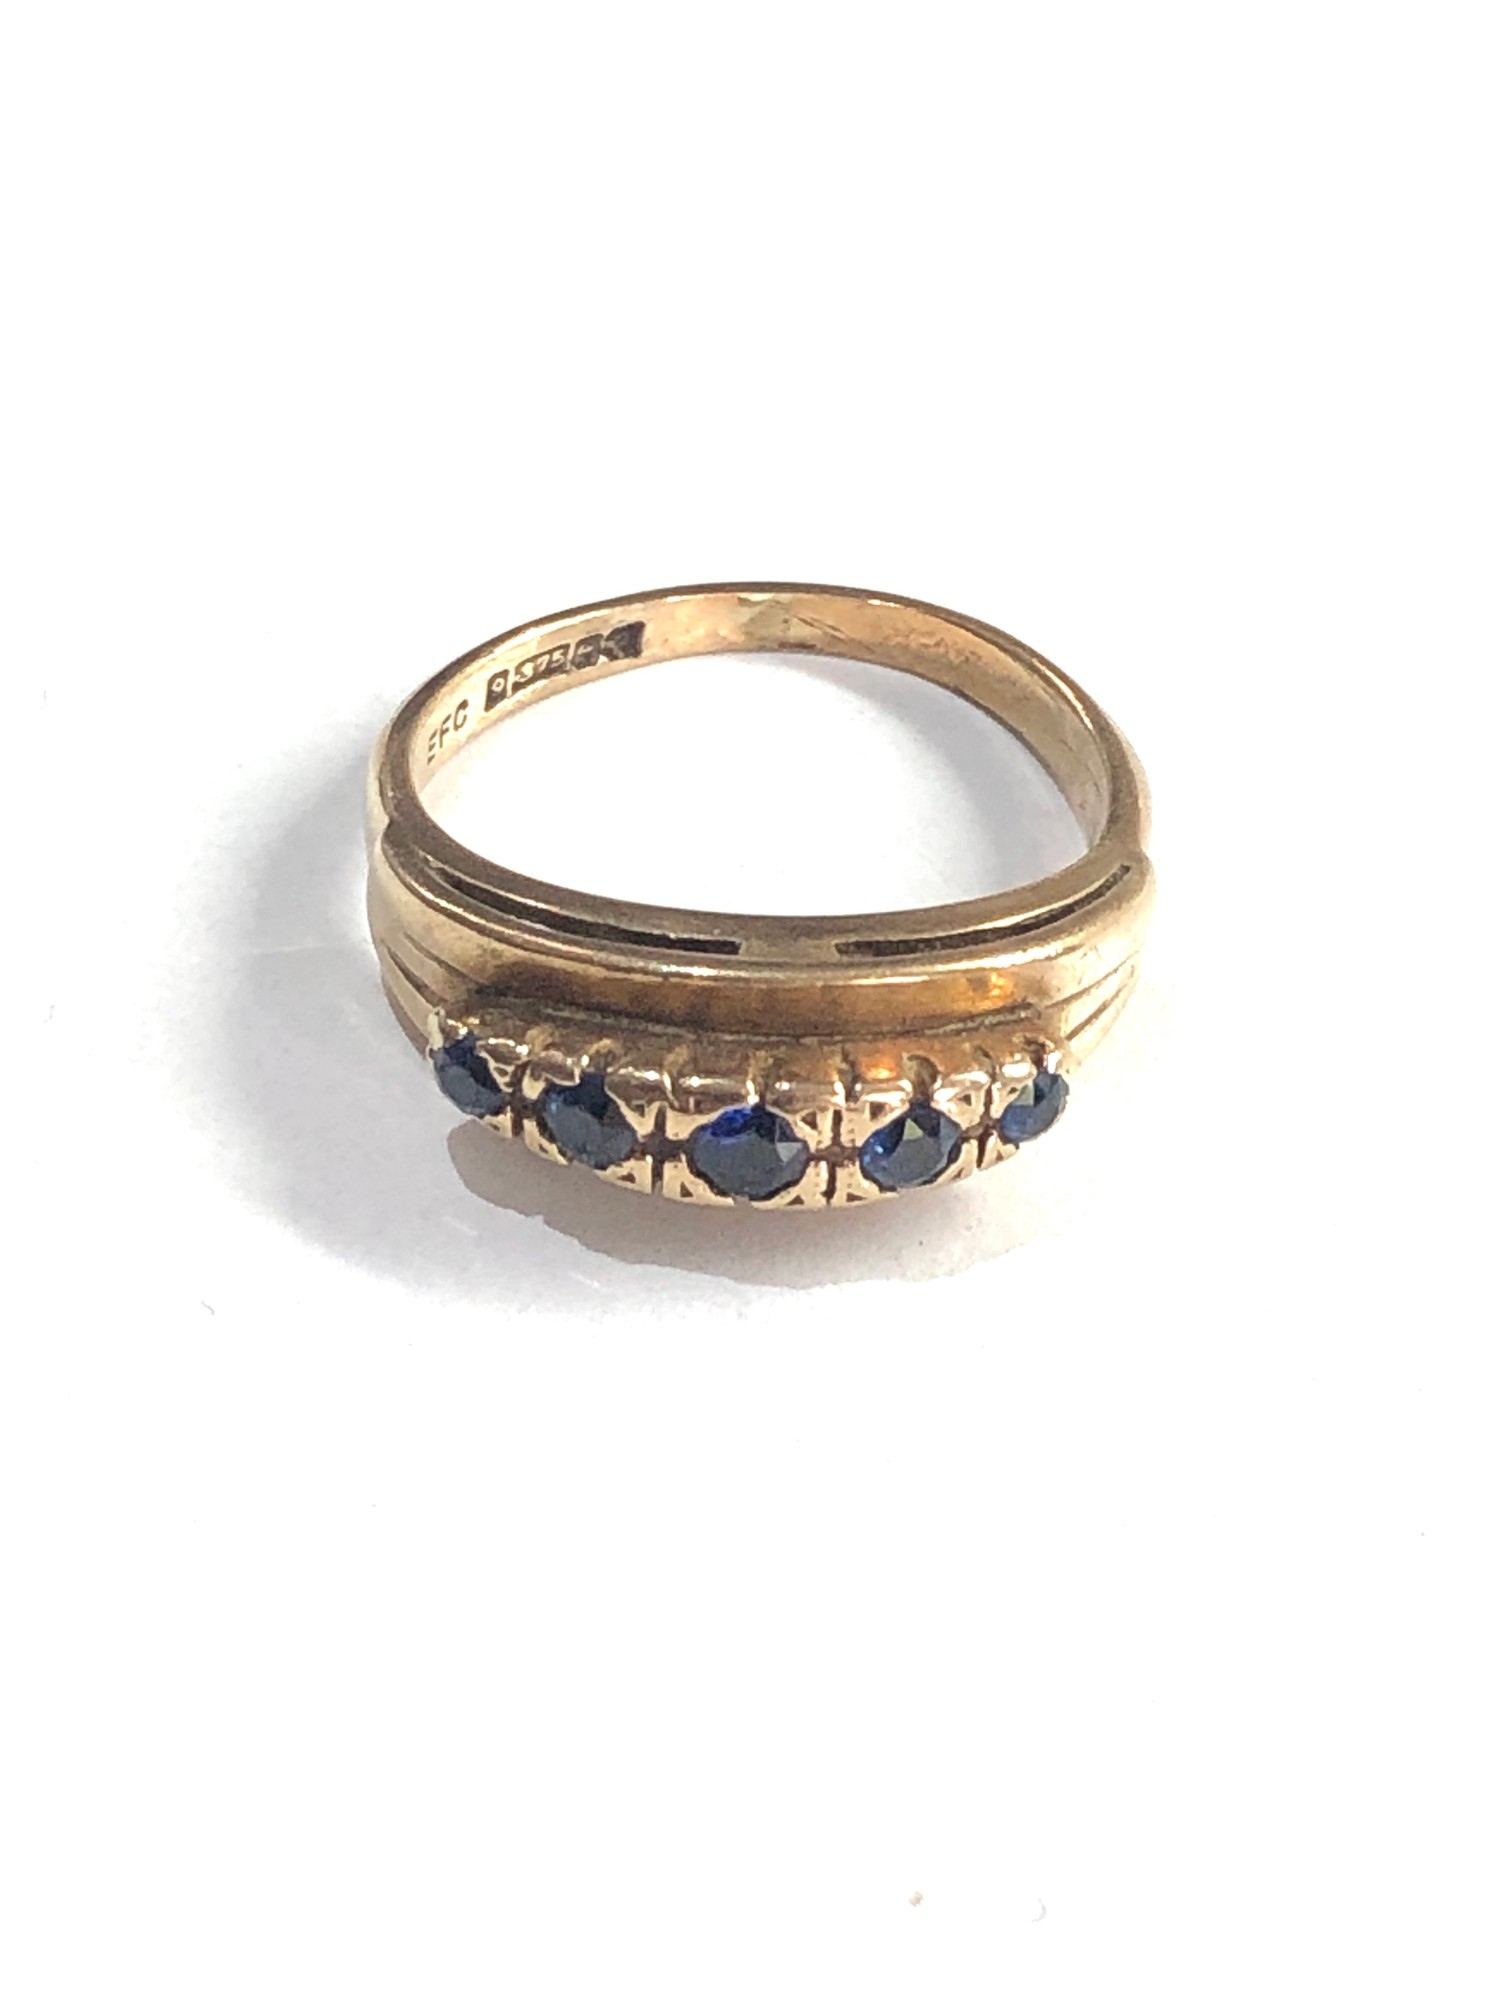 9ct gold sapphire 5 stone ring 3.2g